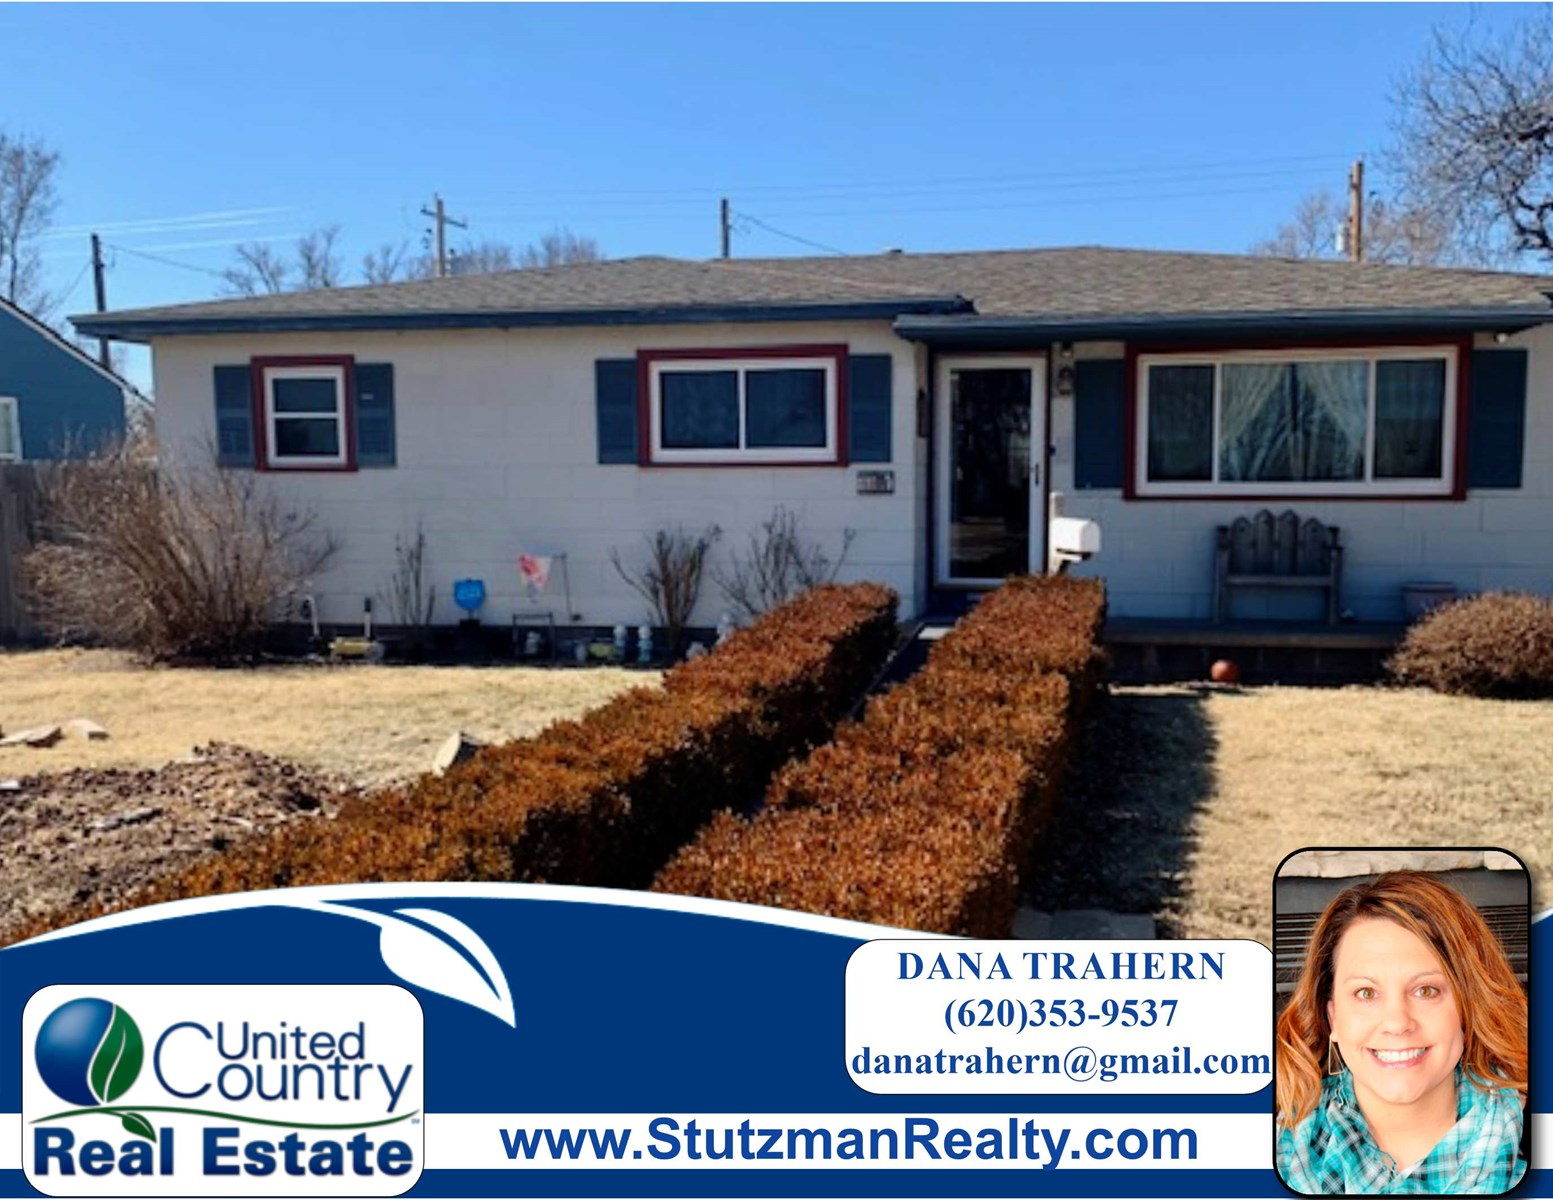 CHARMING THREE BEDROOM HOME FOR SALE IN ULYSSES, KS